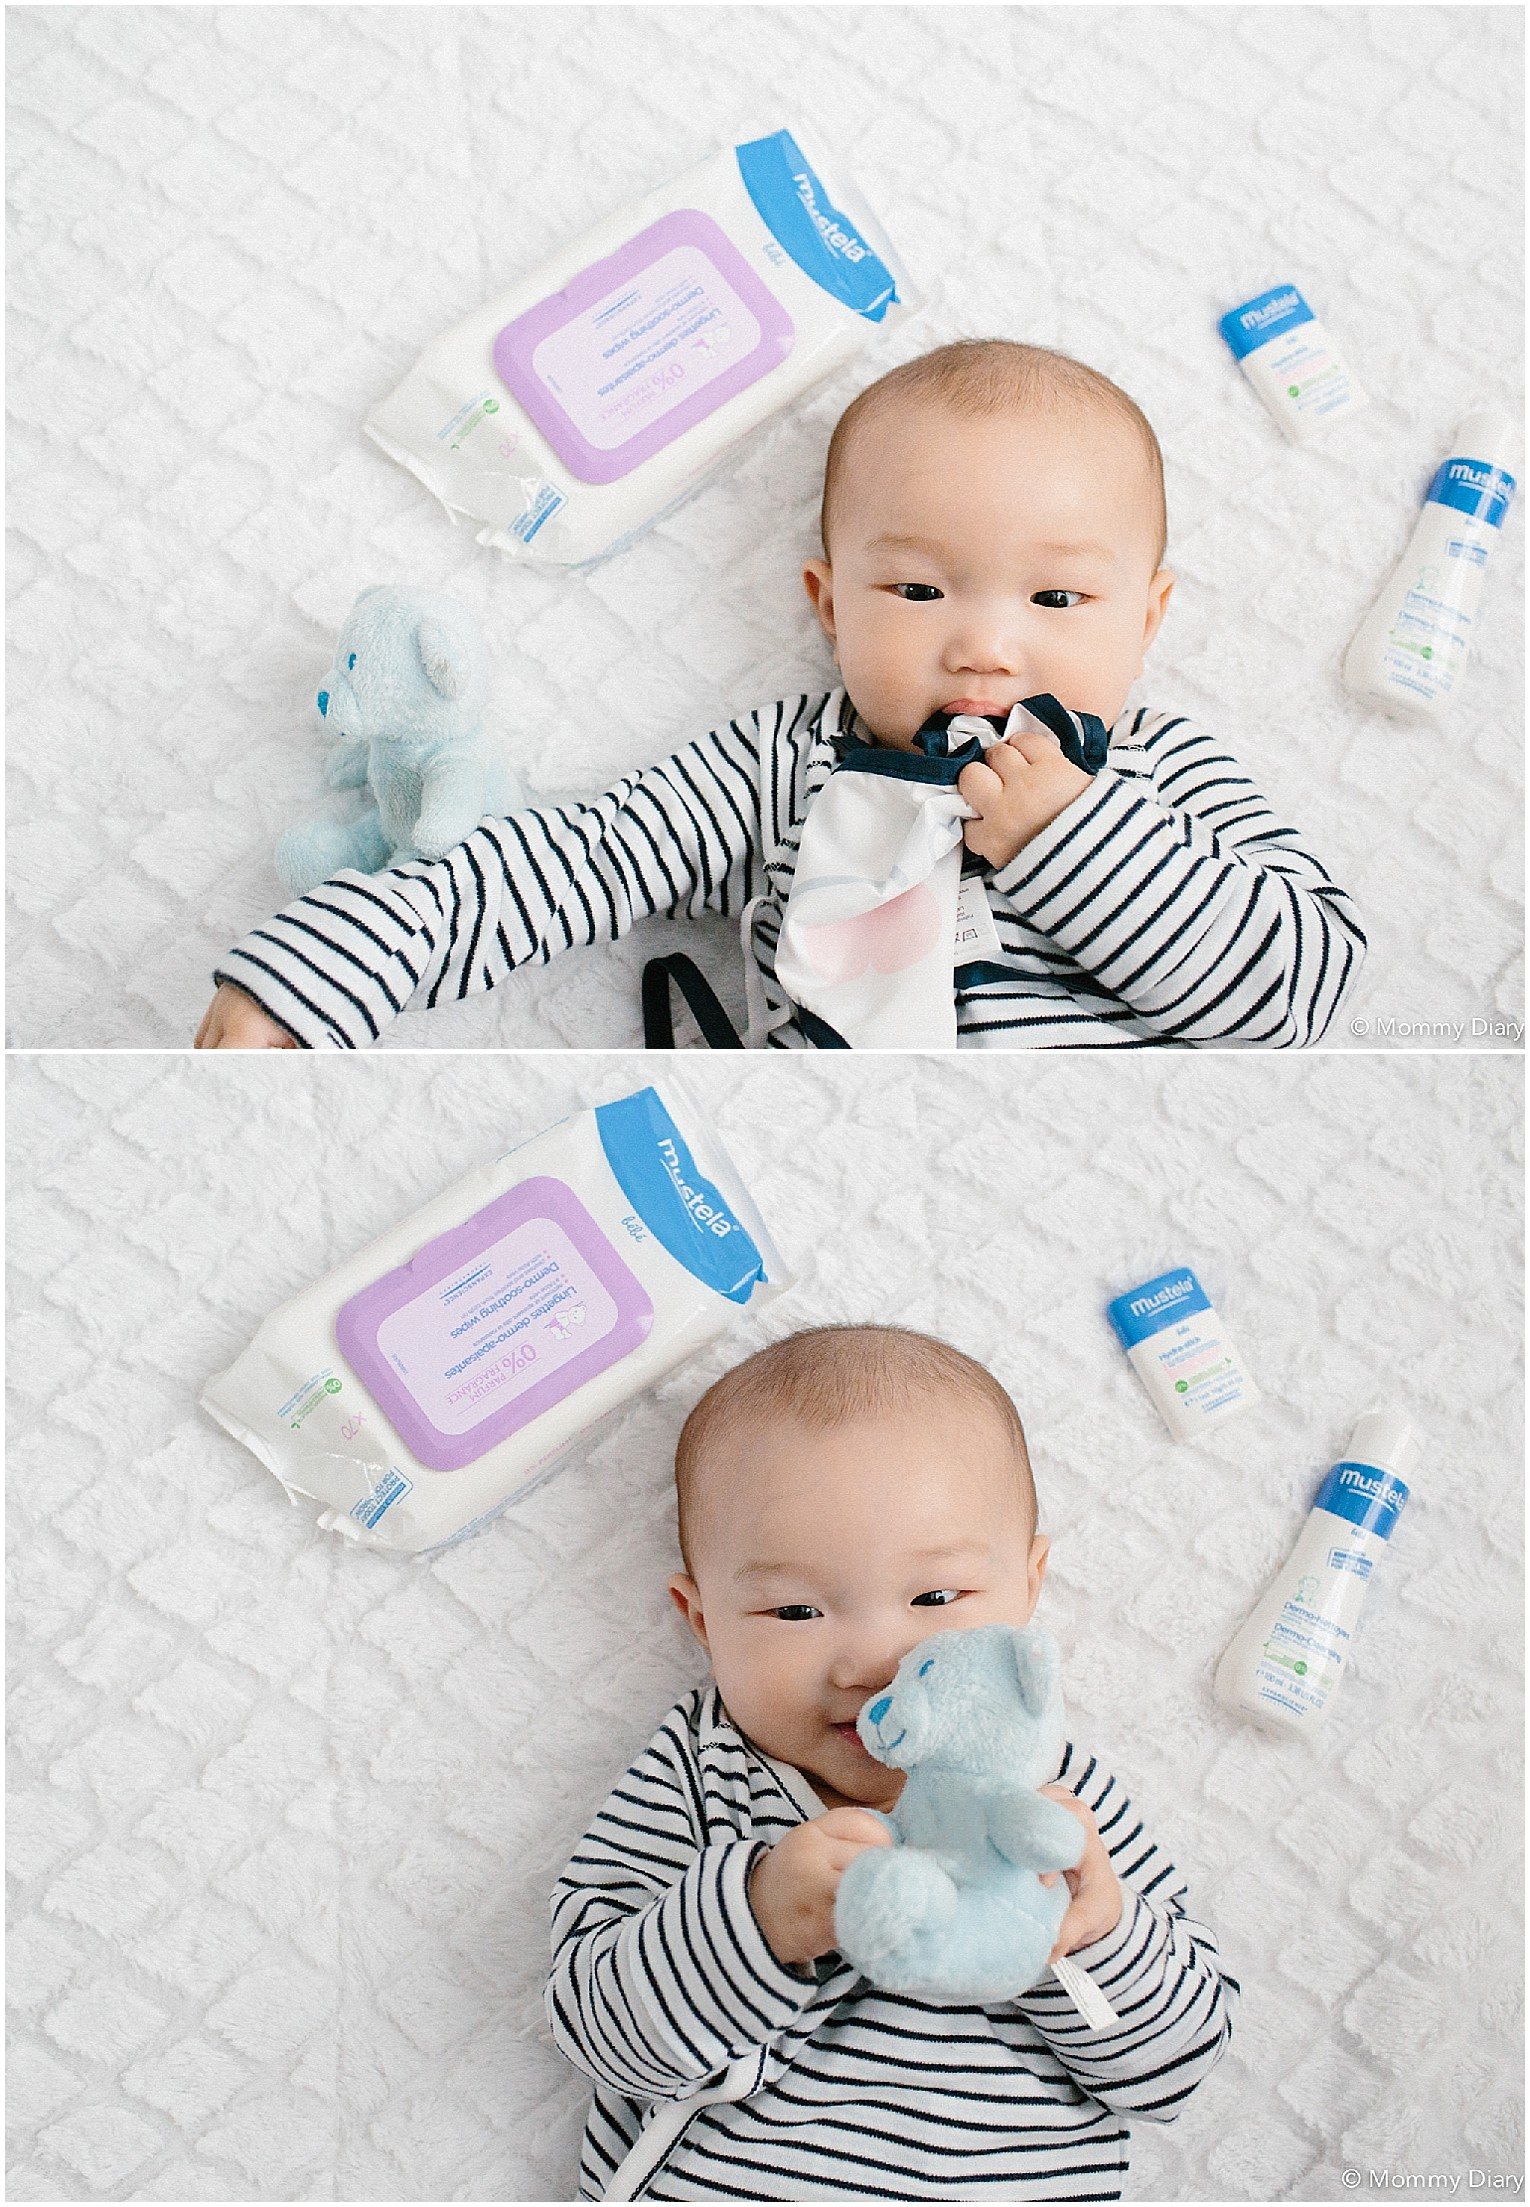 Mustela-usa-baby-essential